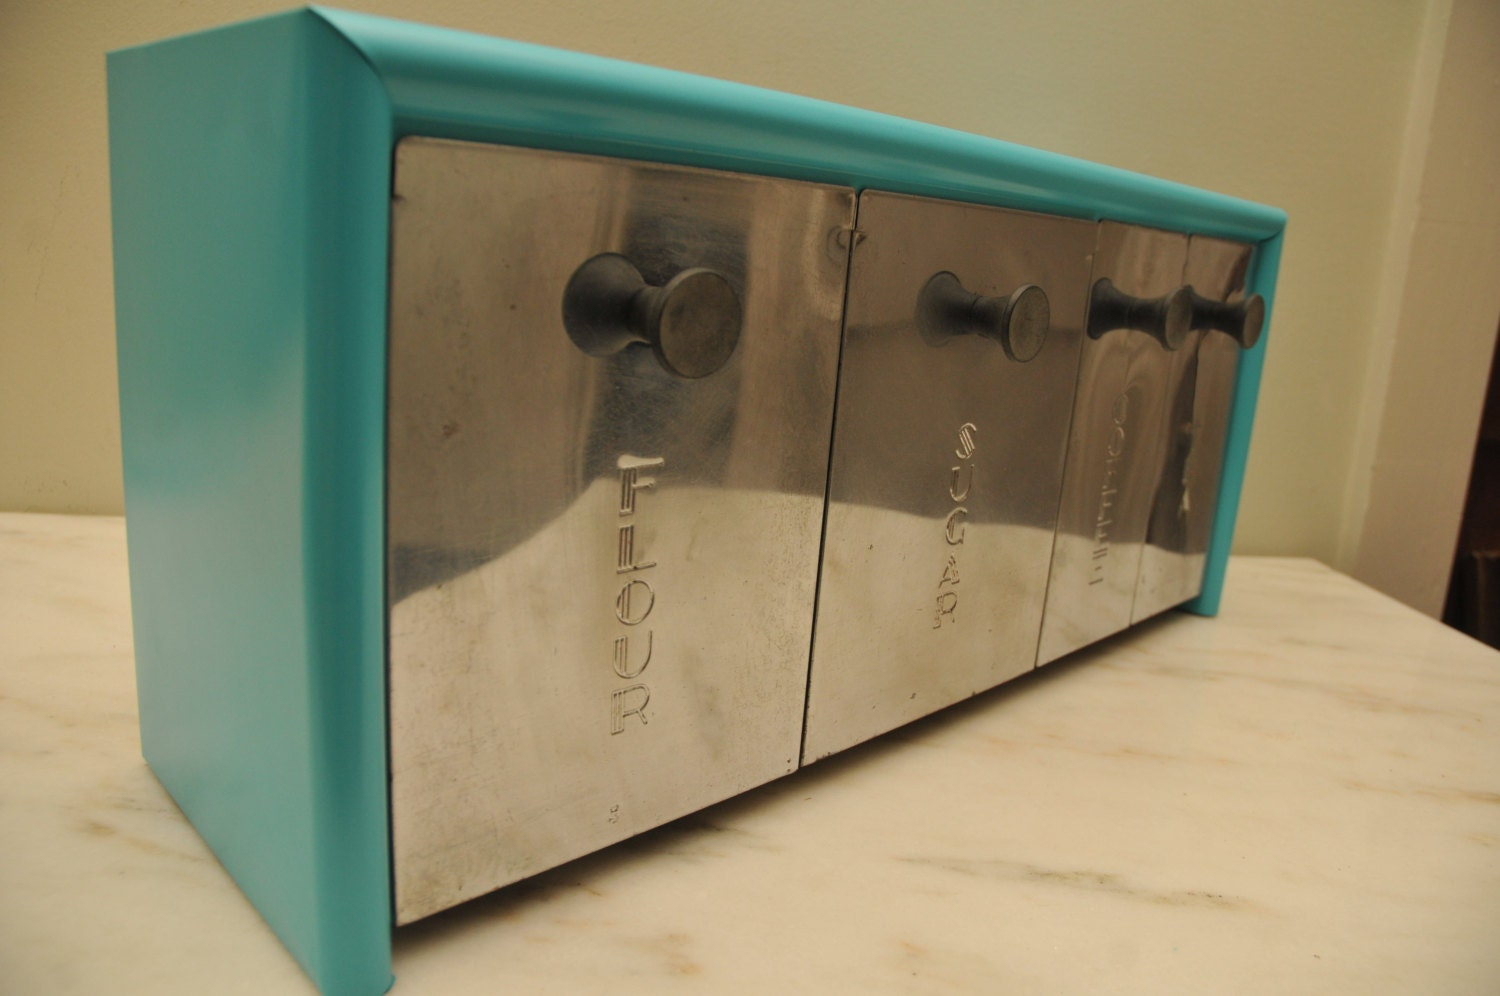 vintage turquoise emco metal kitchen canister set wall mount vintage ceramic kitchen canister sets vintage kitchen